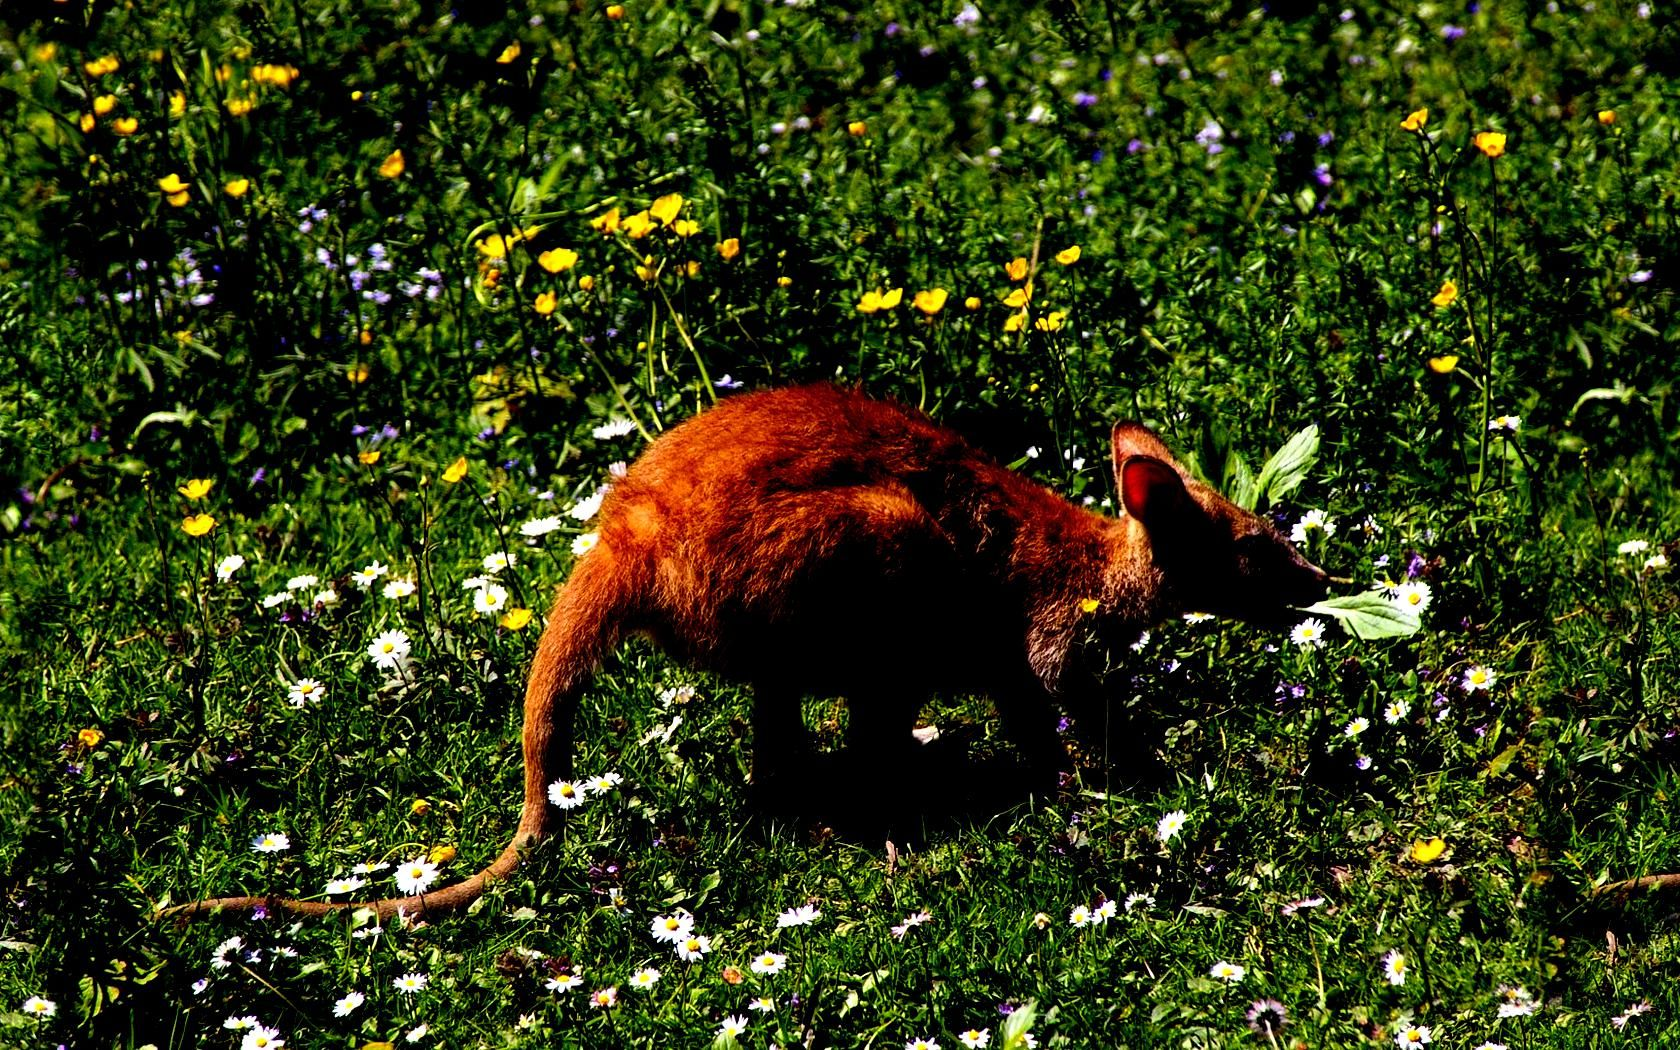 How sweet <3 a baby kangaroo on a field of daisies.